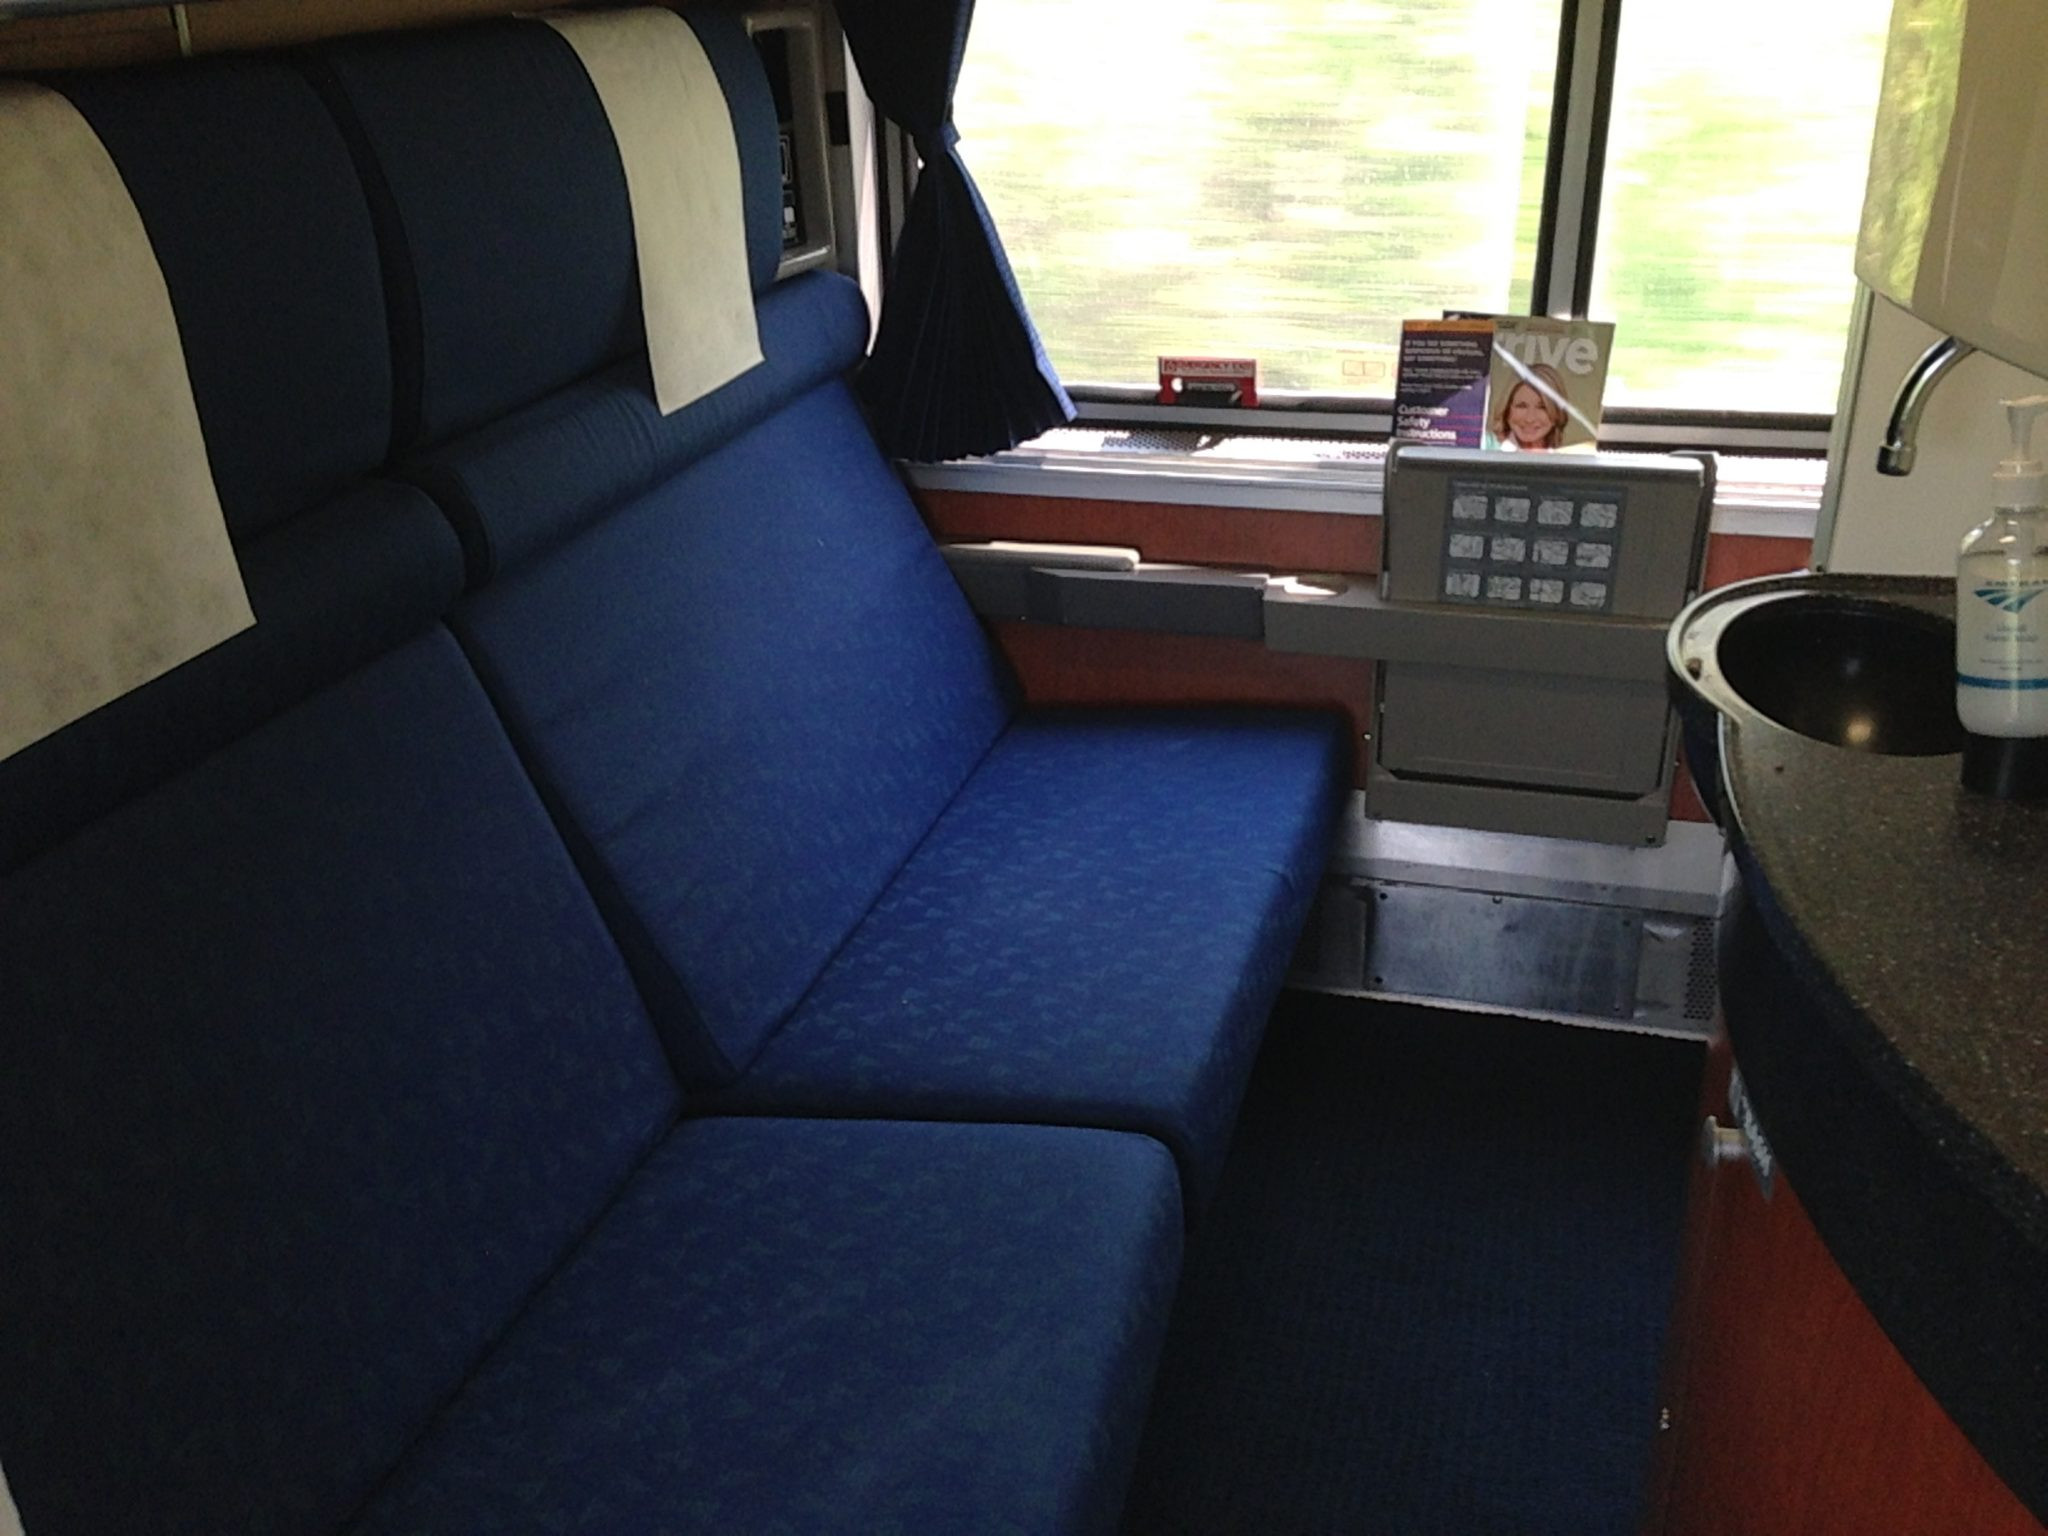 Best ideas about Amtrak Bedroom Suite . Save or Pin PHOTOS Amtrak Bedroom Suite Tour Now.